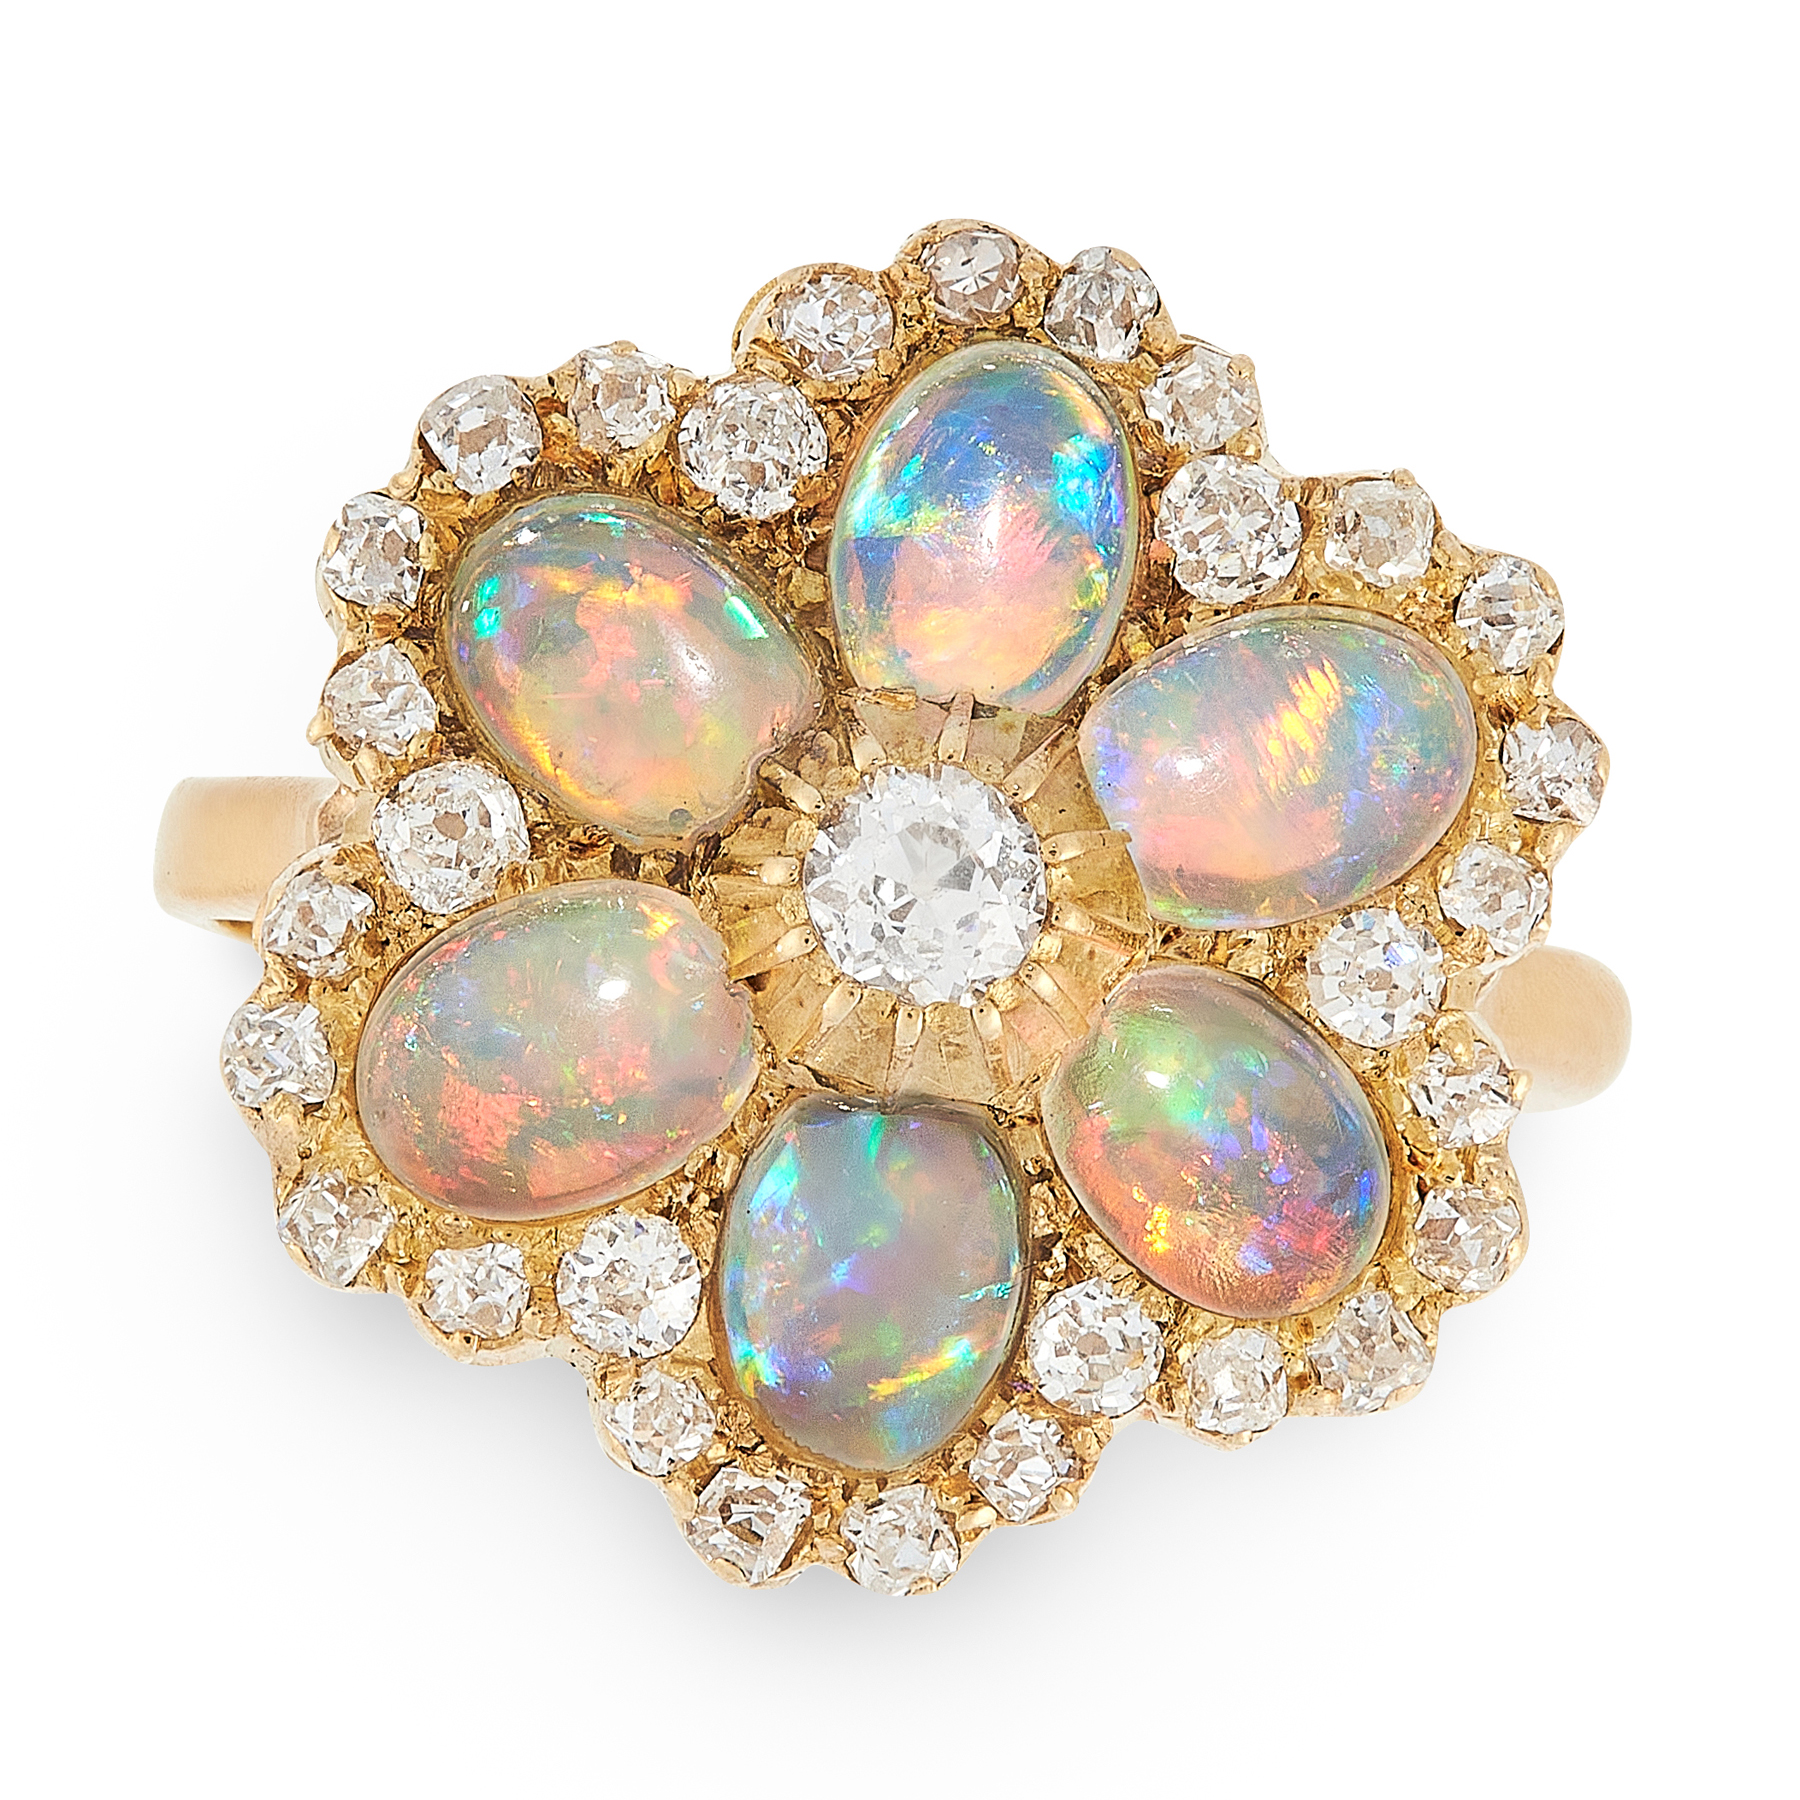 AN OPAL AND DIAMOND CLUSTER RING in yellow gold, comprising of a cluster face set with old cut